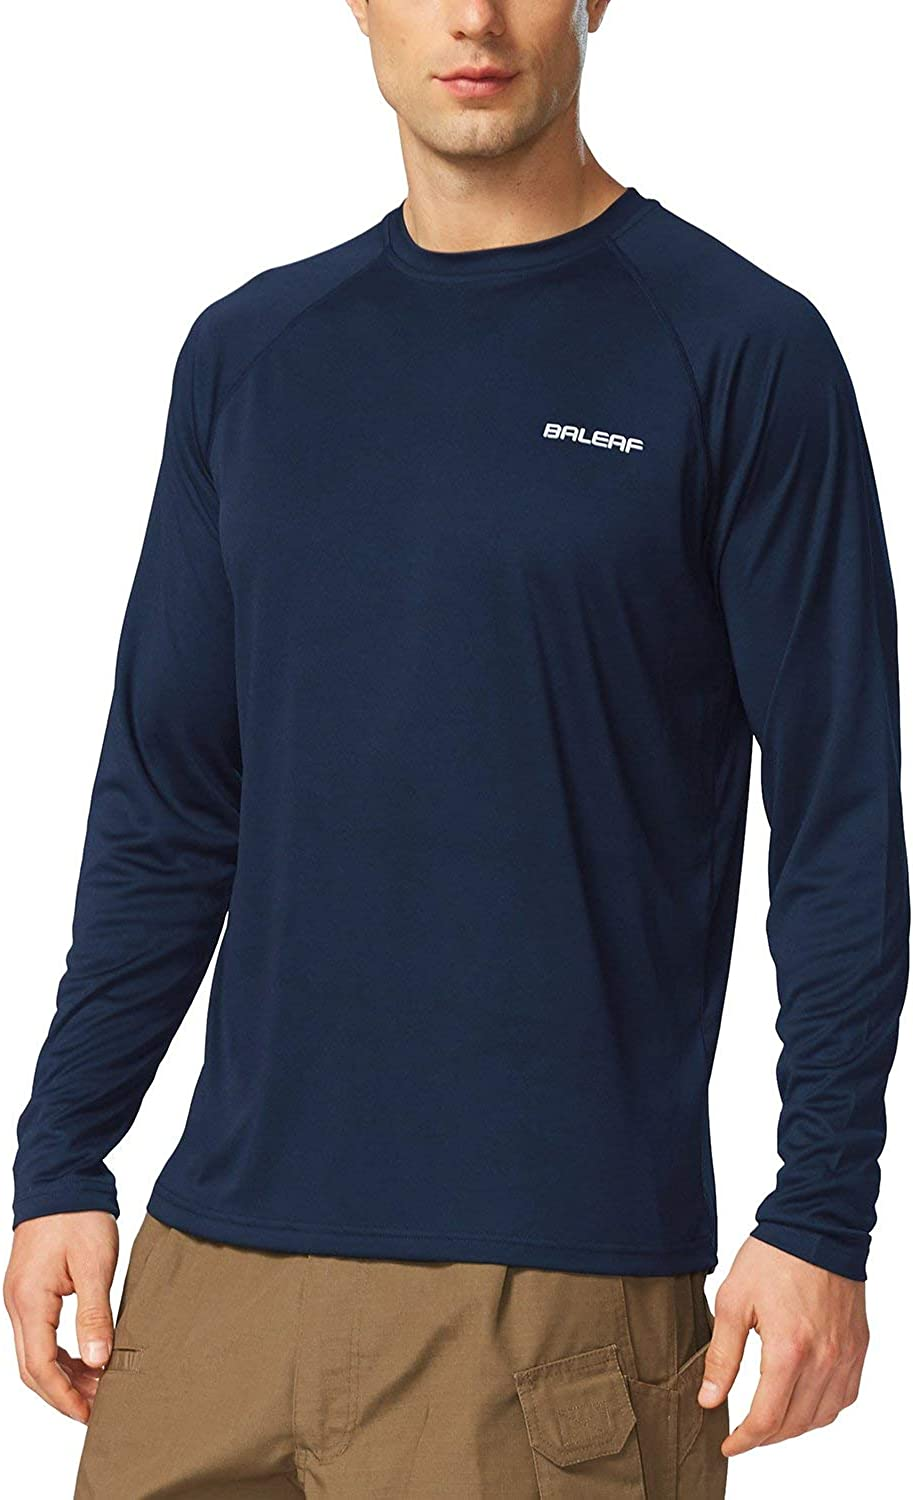 BALEAF Men's UPF 50+ Sun Protection Shirts Long Sleeve Dri Fit SPF T-Shirts Lightweight Fishing Hiking Running: Clothing